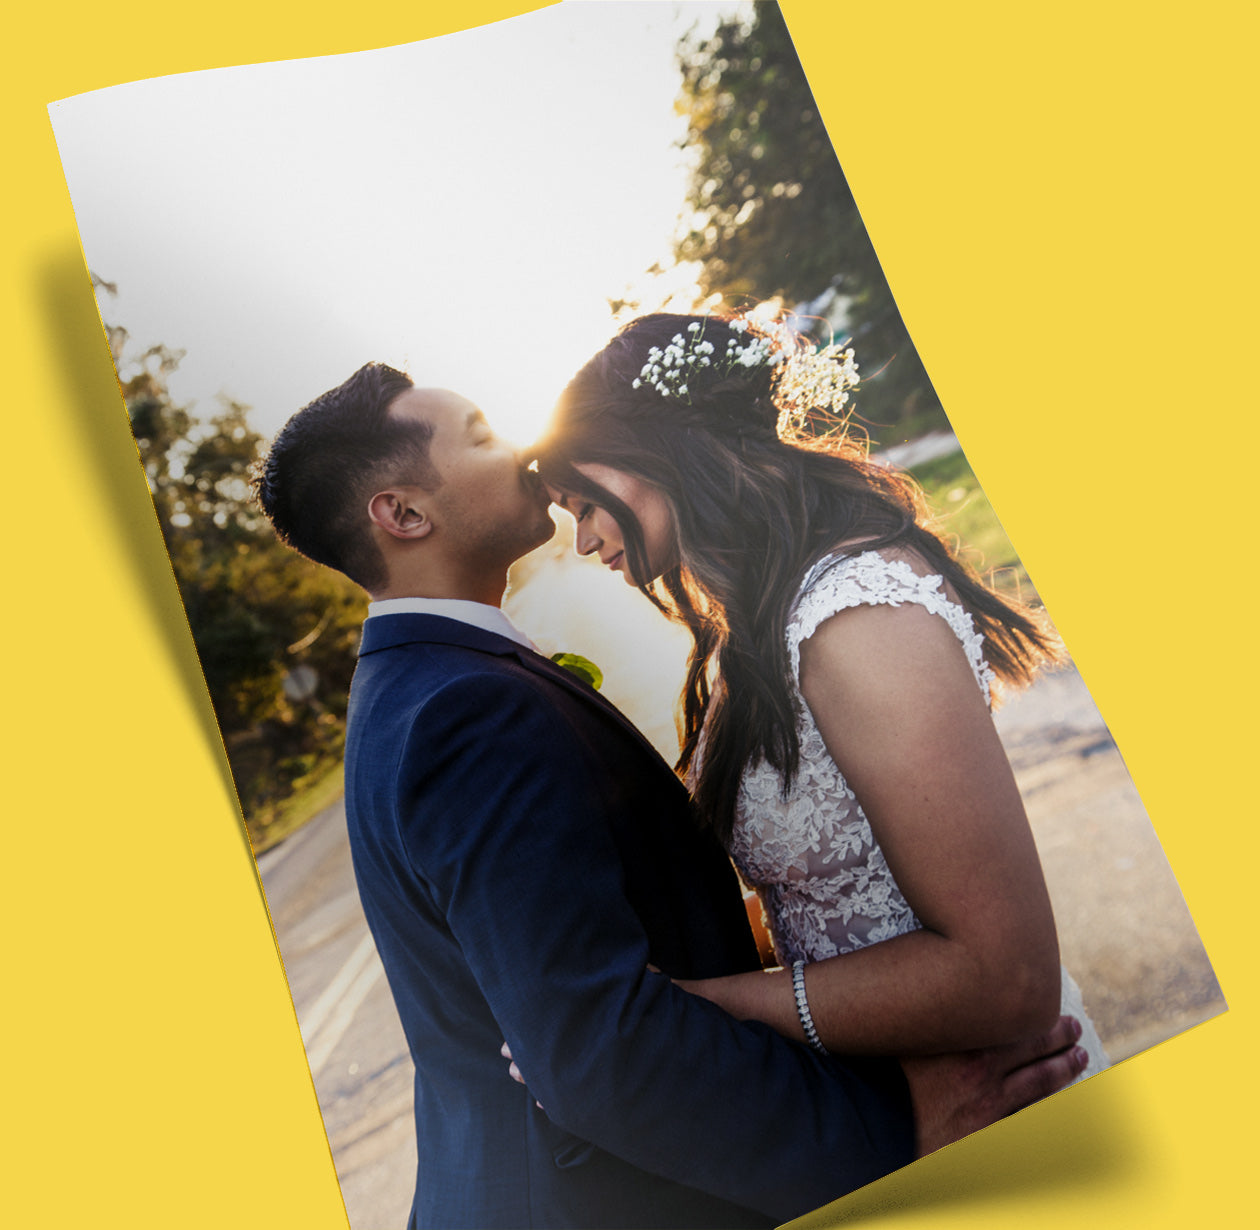 Wedding Photo Printed on a Posterjack Poster Print